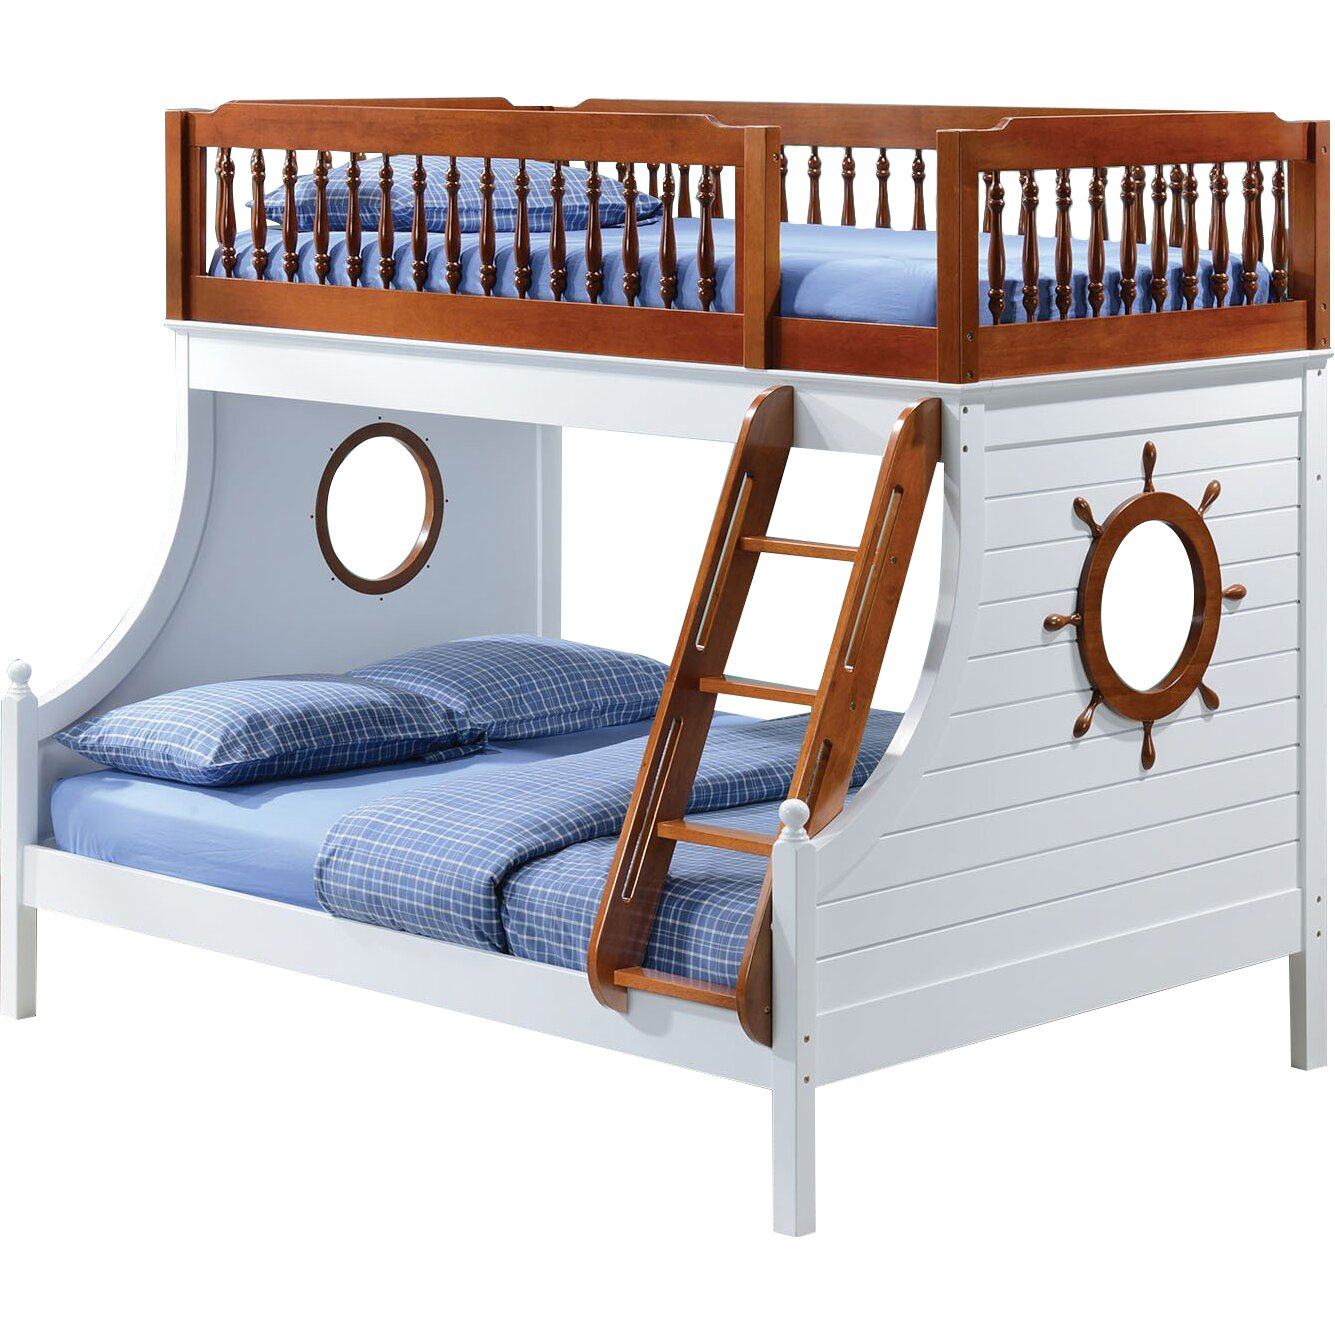 Buy Bunk Bed Stairs Only